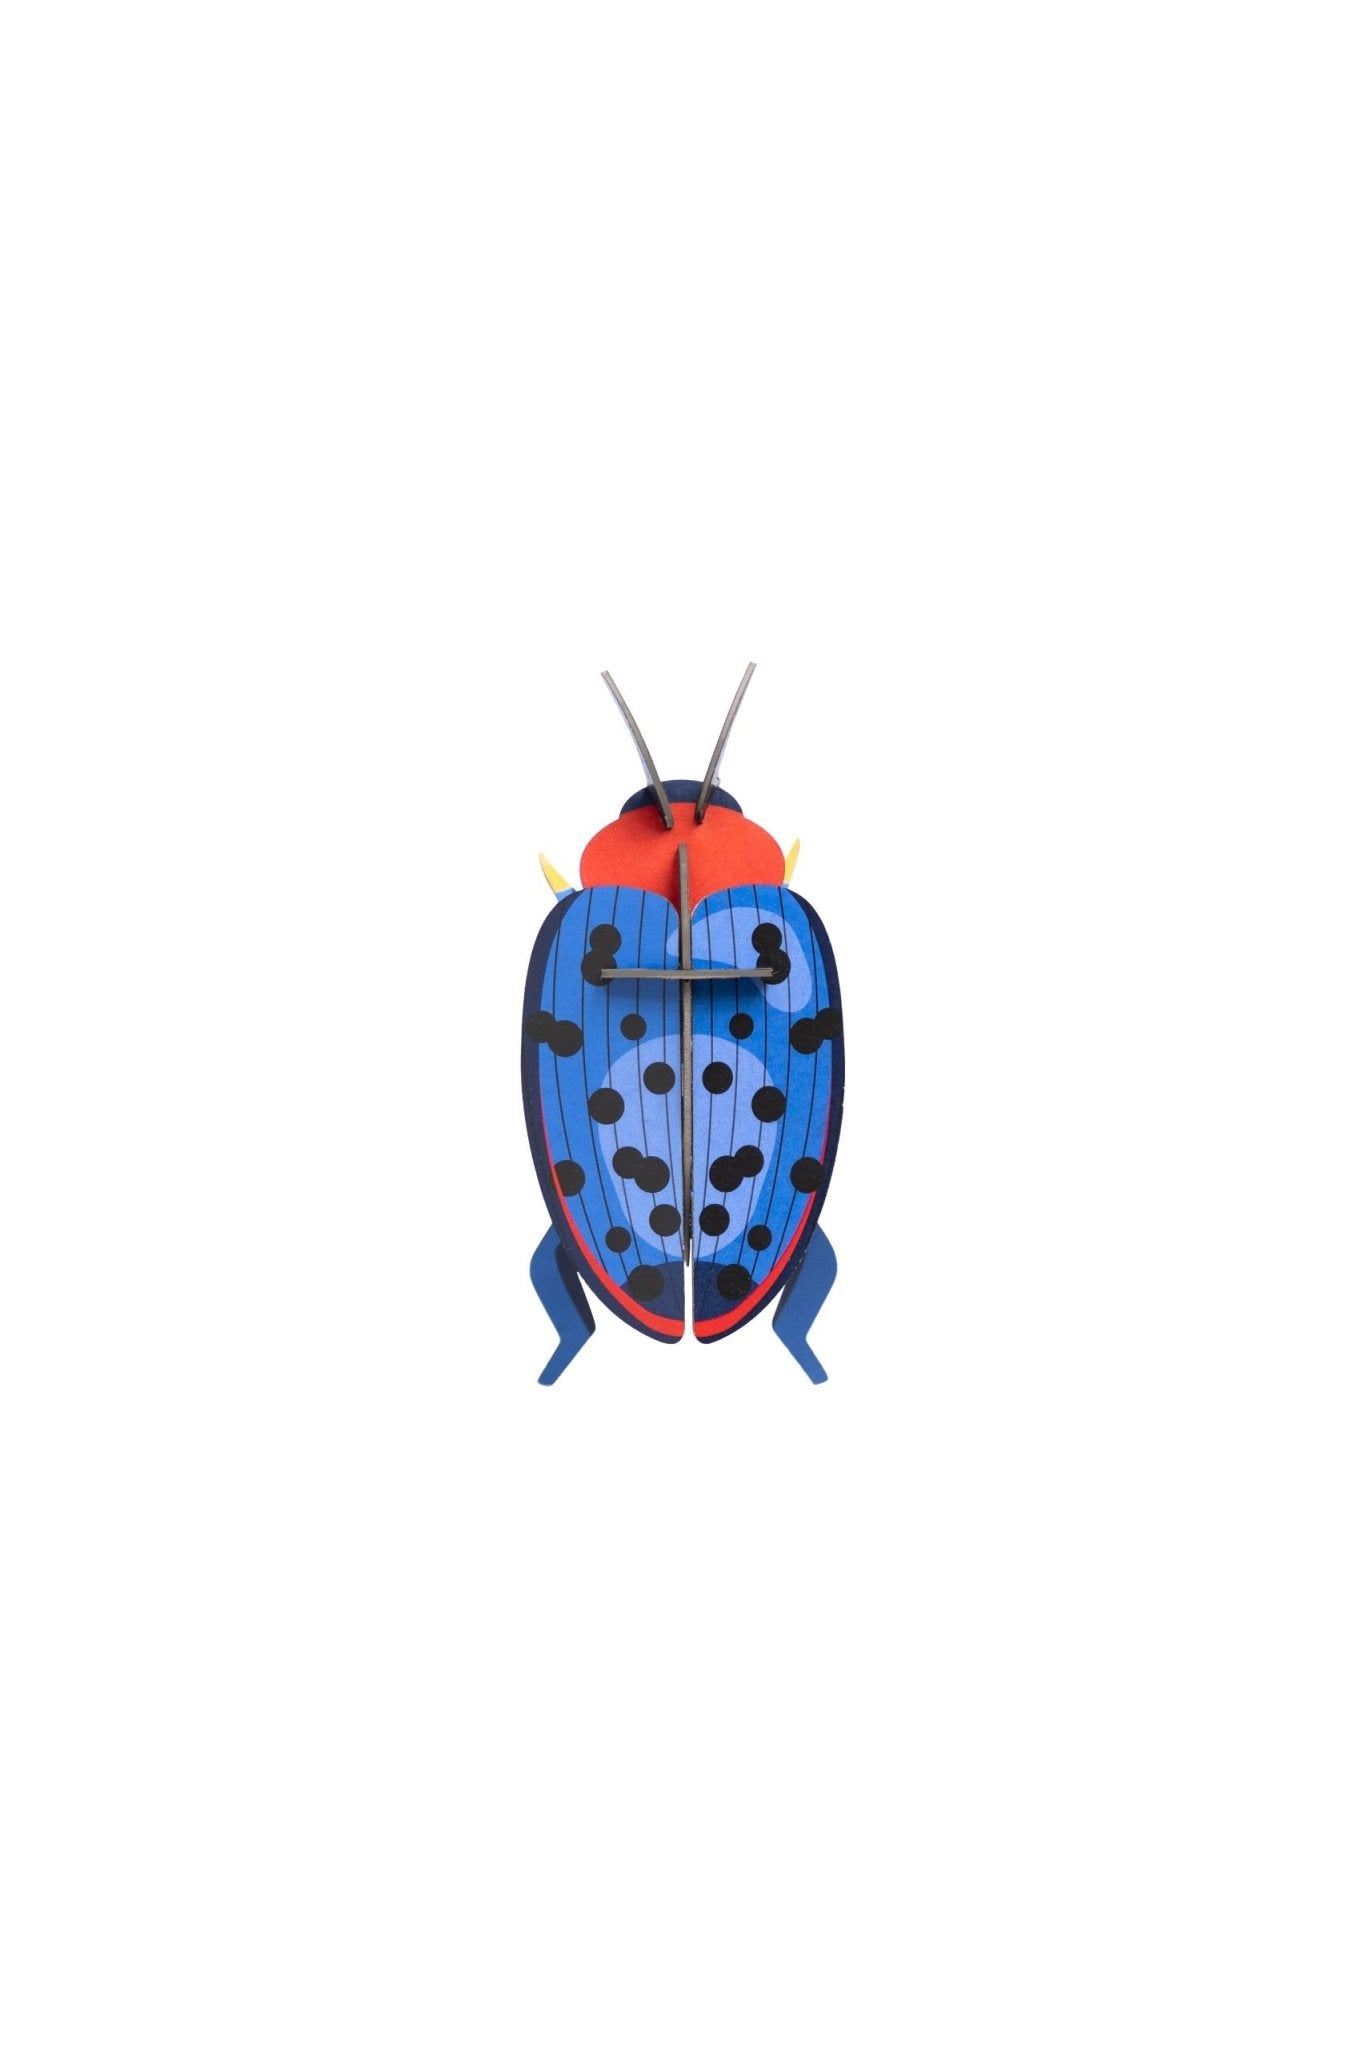 Studio Roof Insect, Wall Decor, Fungus Beetle - The Stationery Cupboard